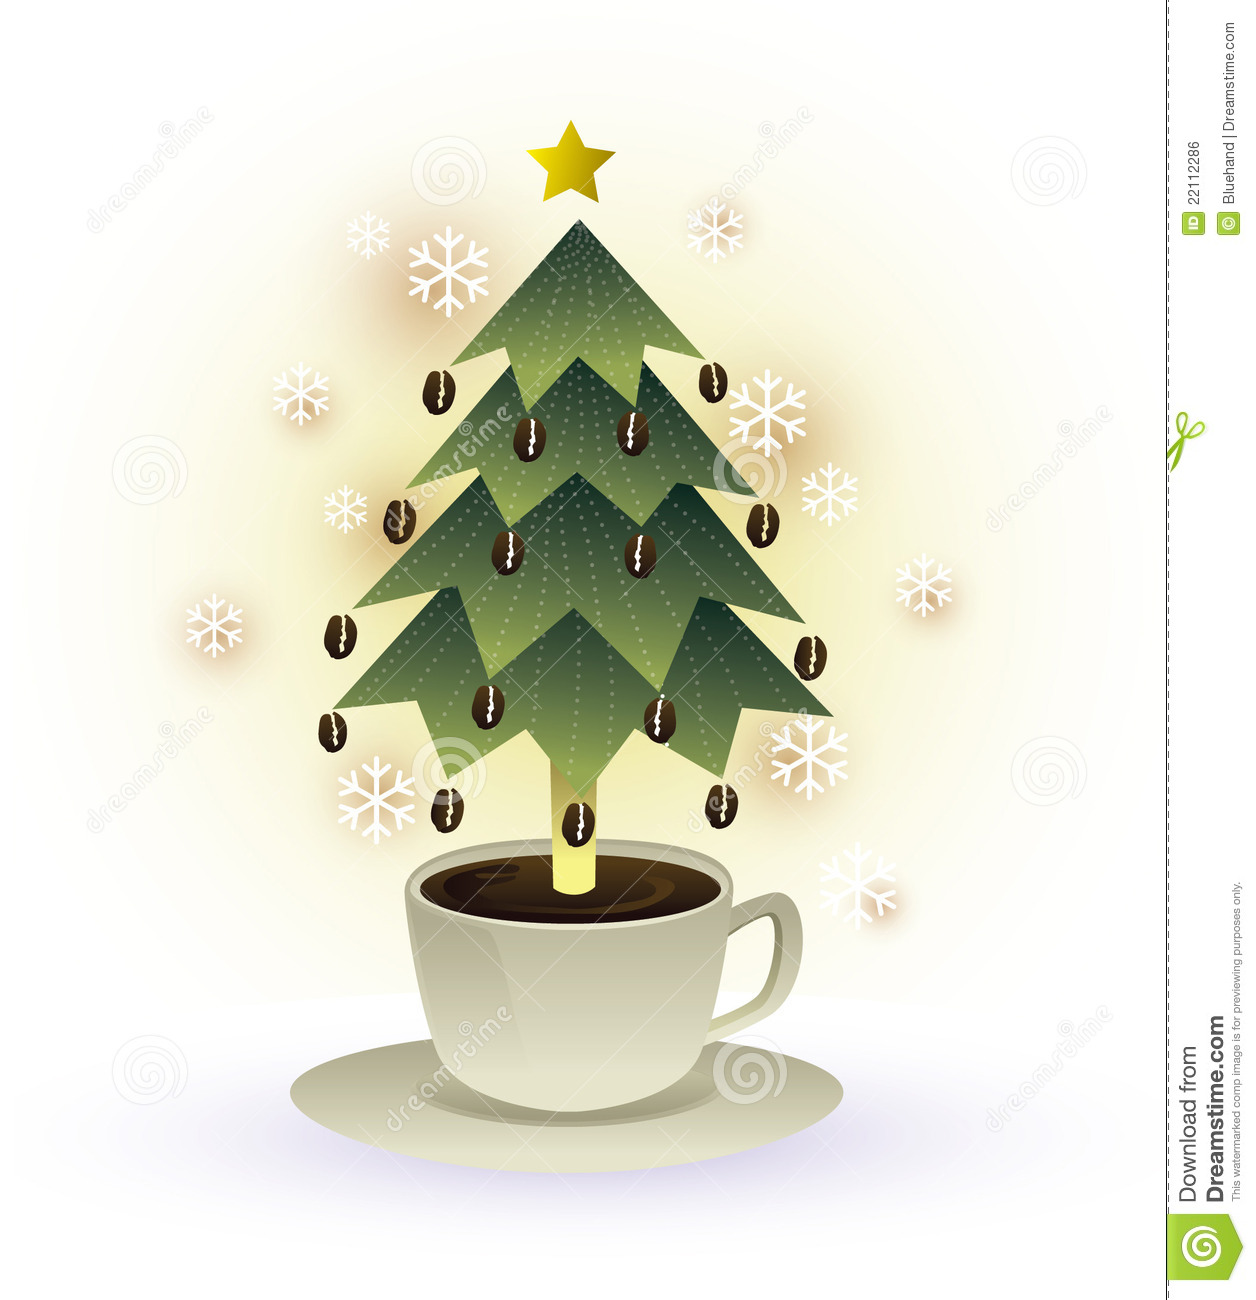 christmas tree coffee cup graphic 22112286 Blue Max Coffee Christmas Card With Hot Cup Of Coffee Stock Image Image